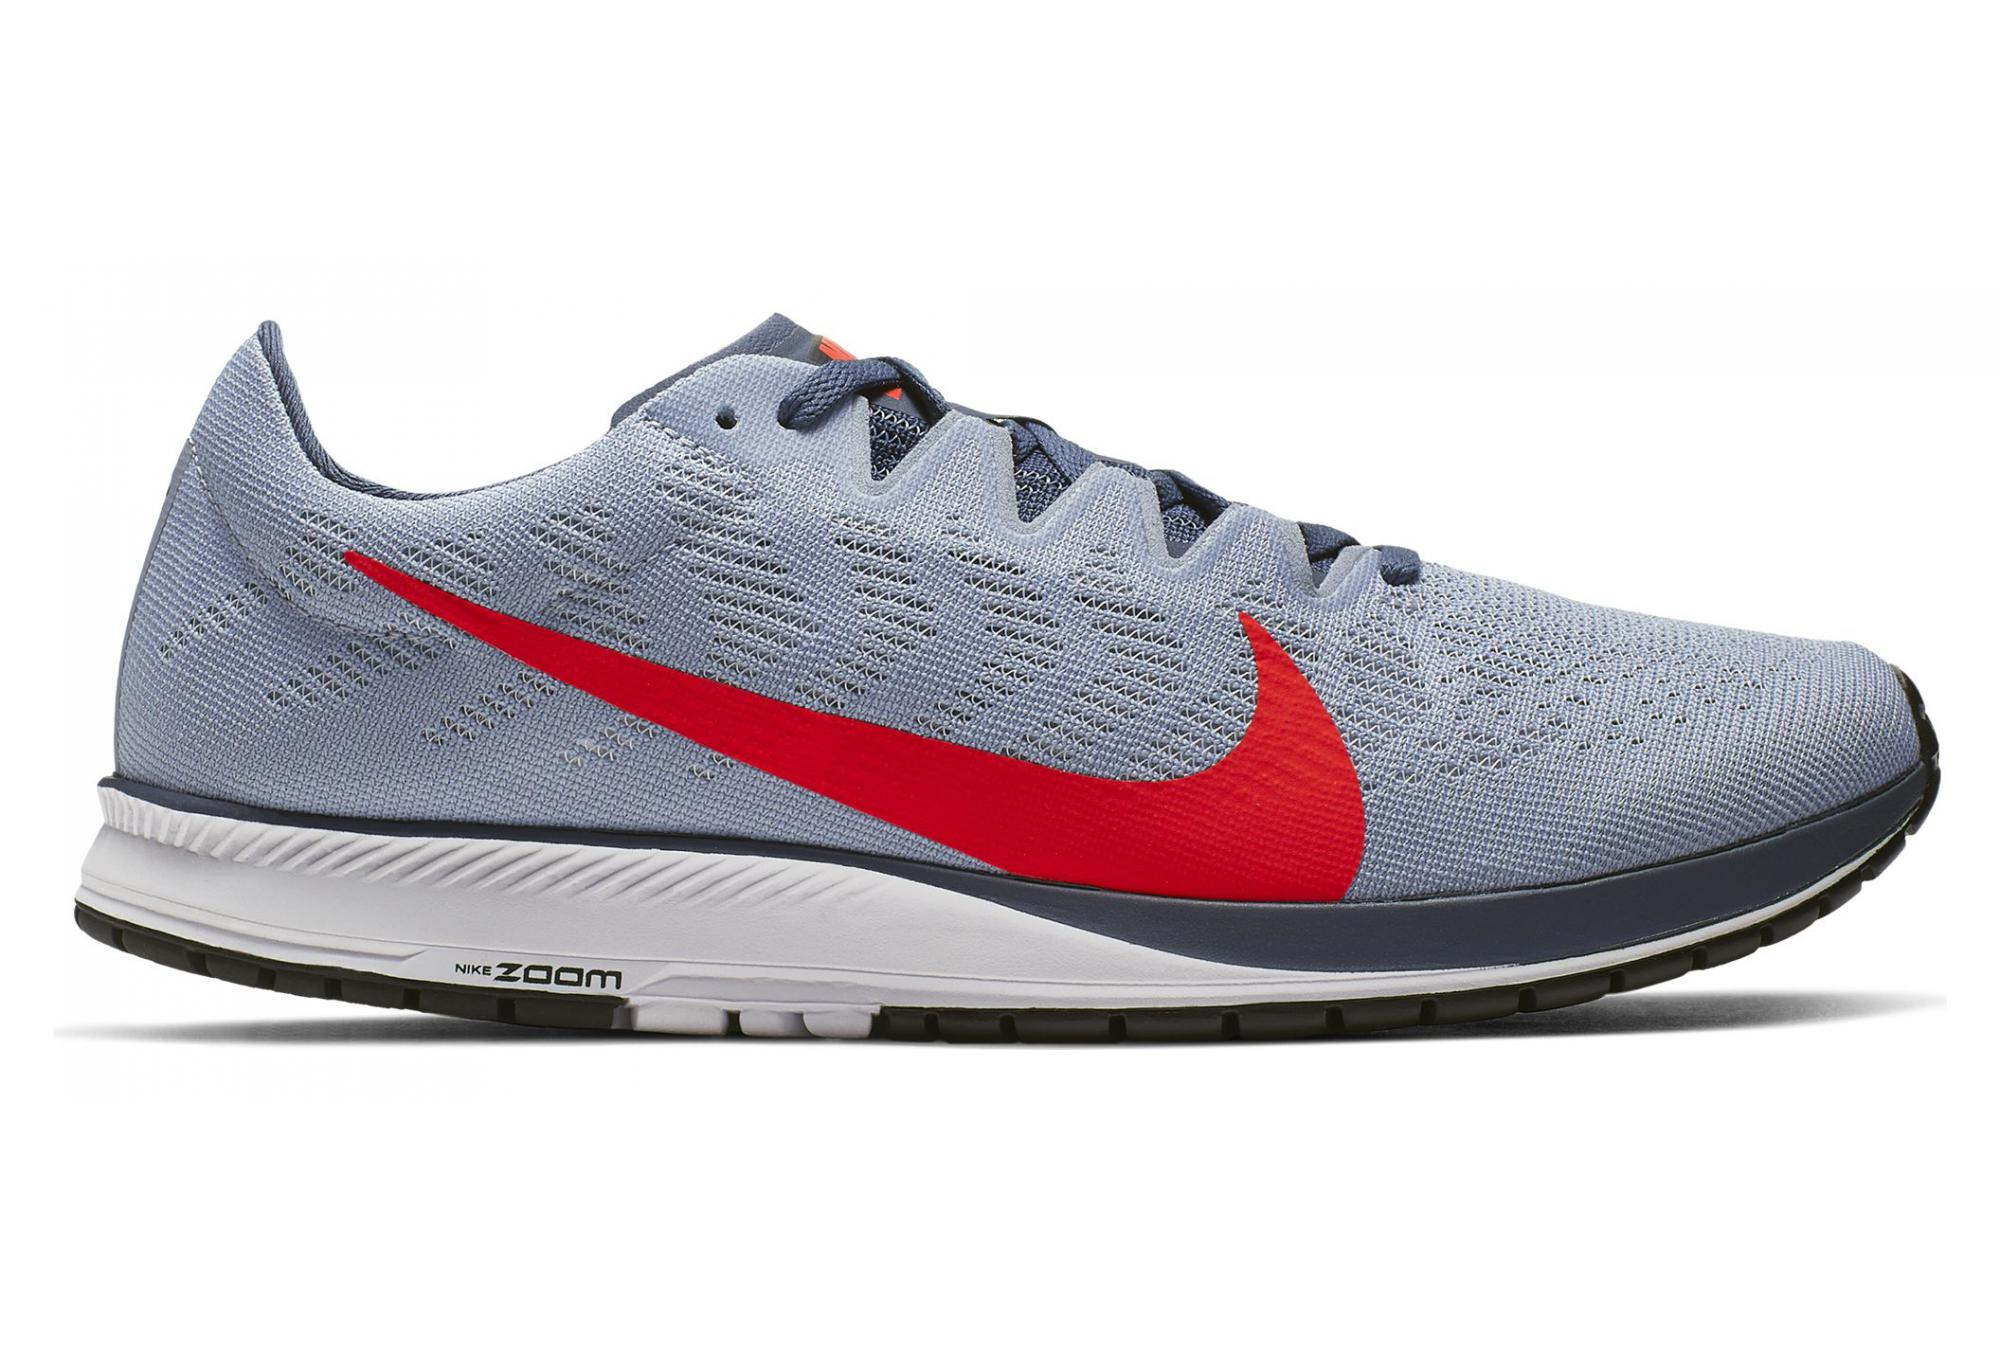 half off 66a27 b0f1a Nike Air Zoom Streak 7 Blue Orange Men   Alltricks.com